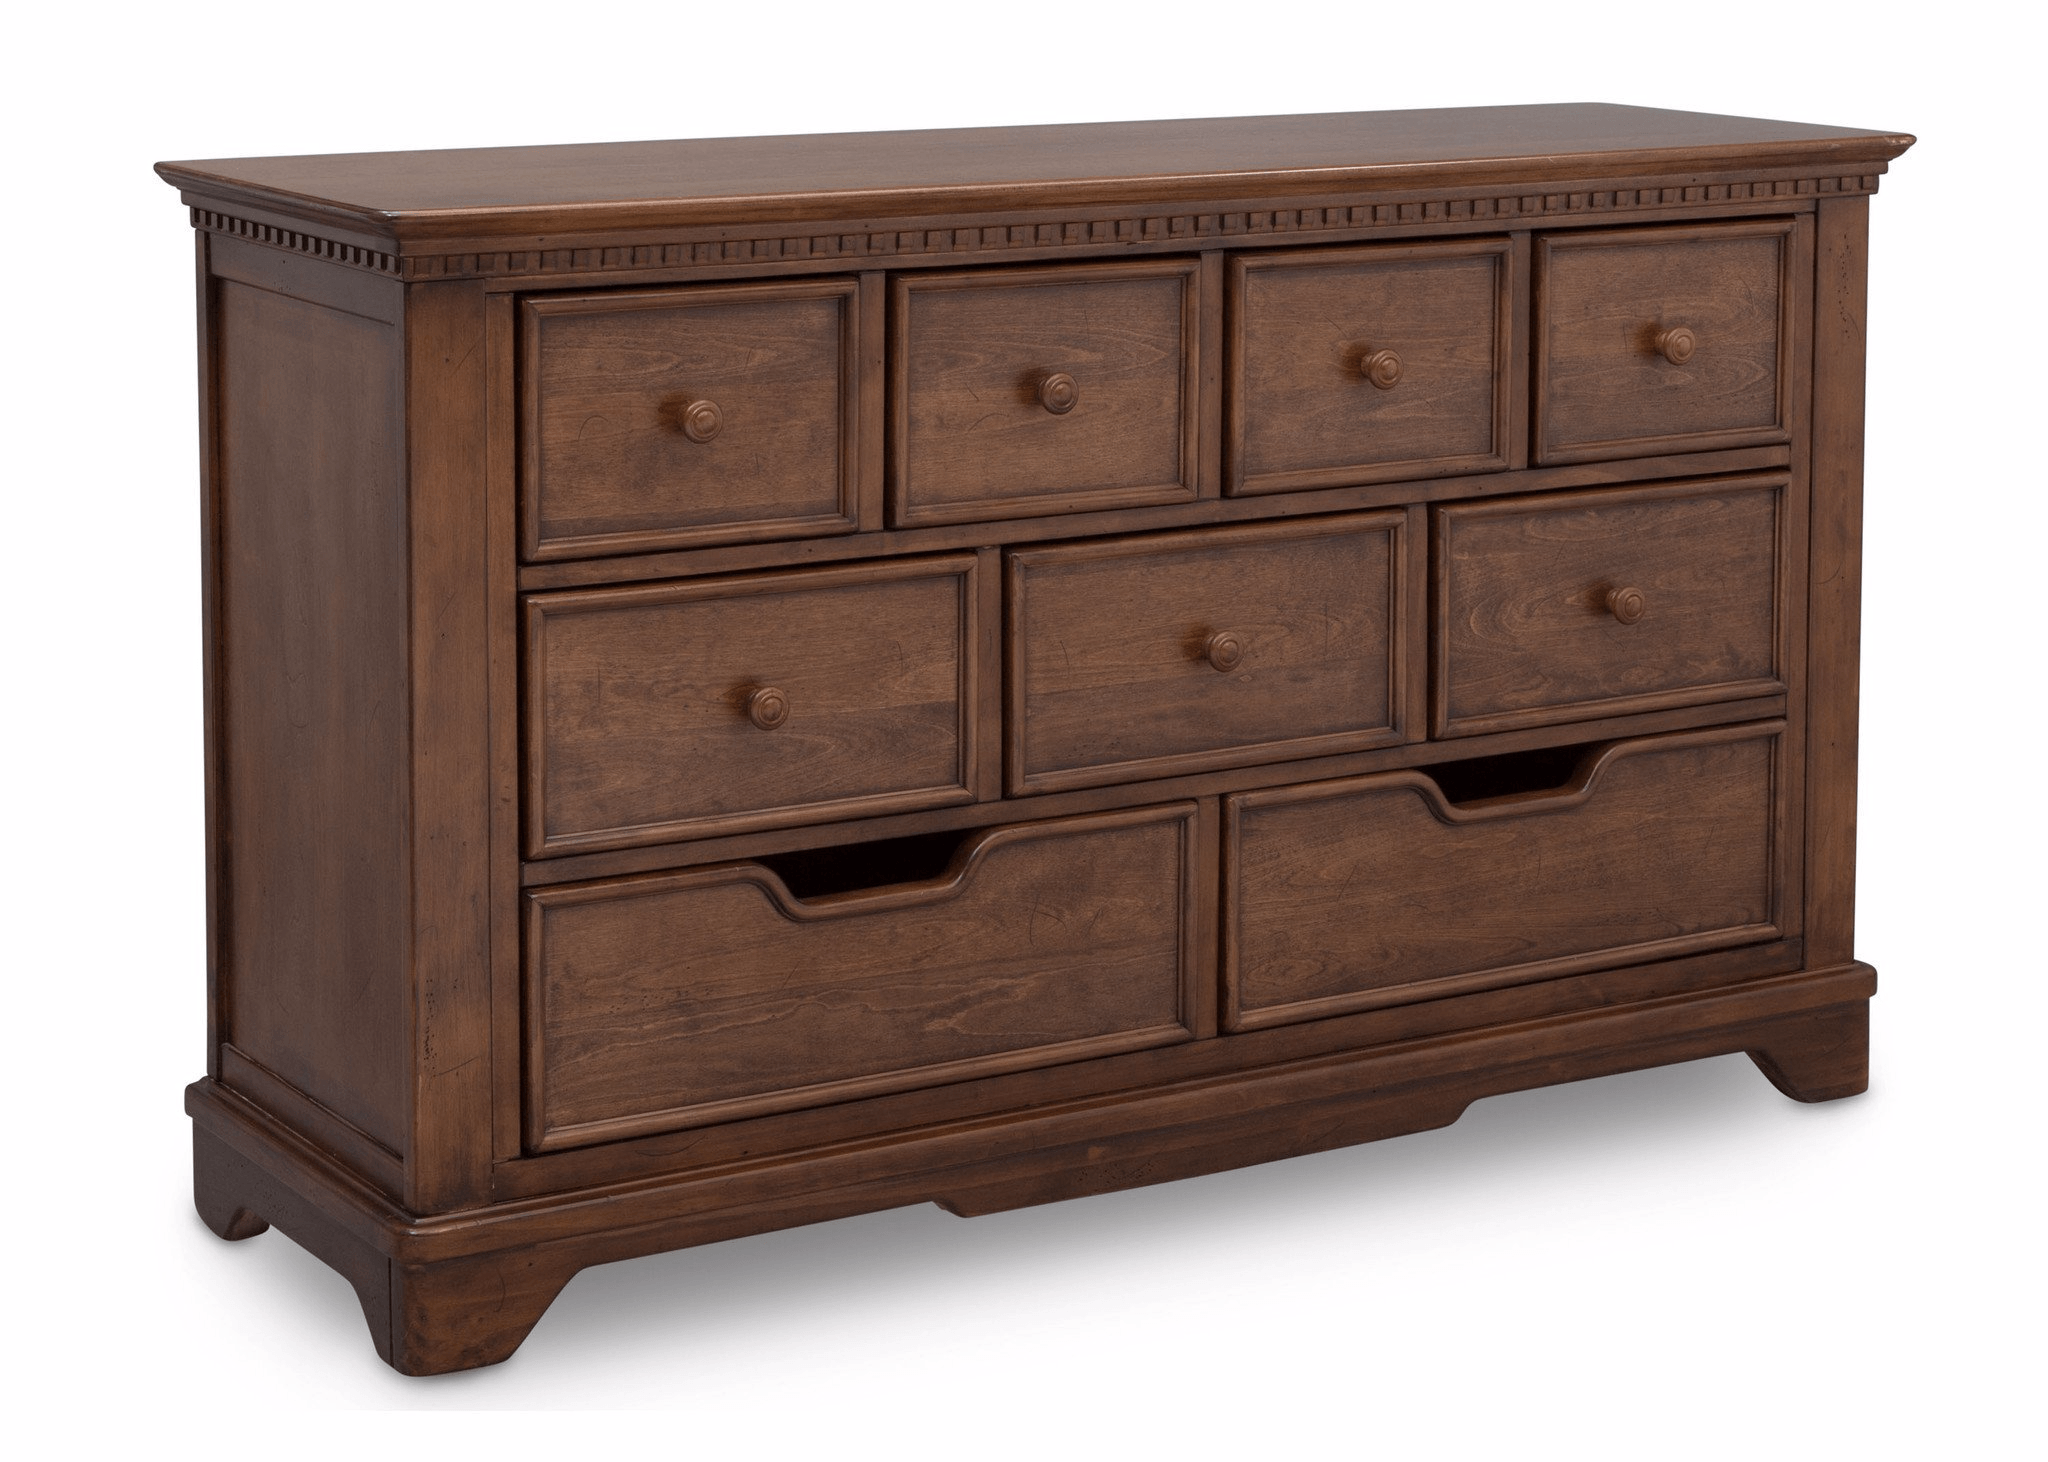 Antique Chestnut (2100)